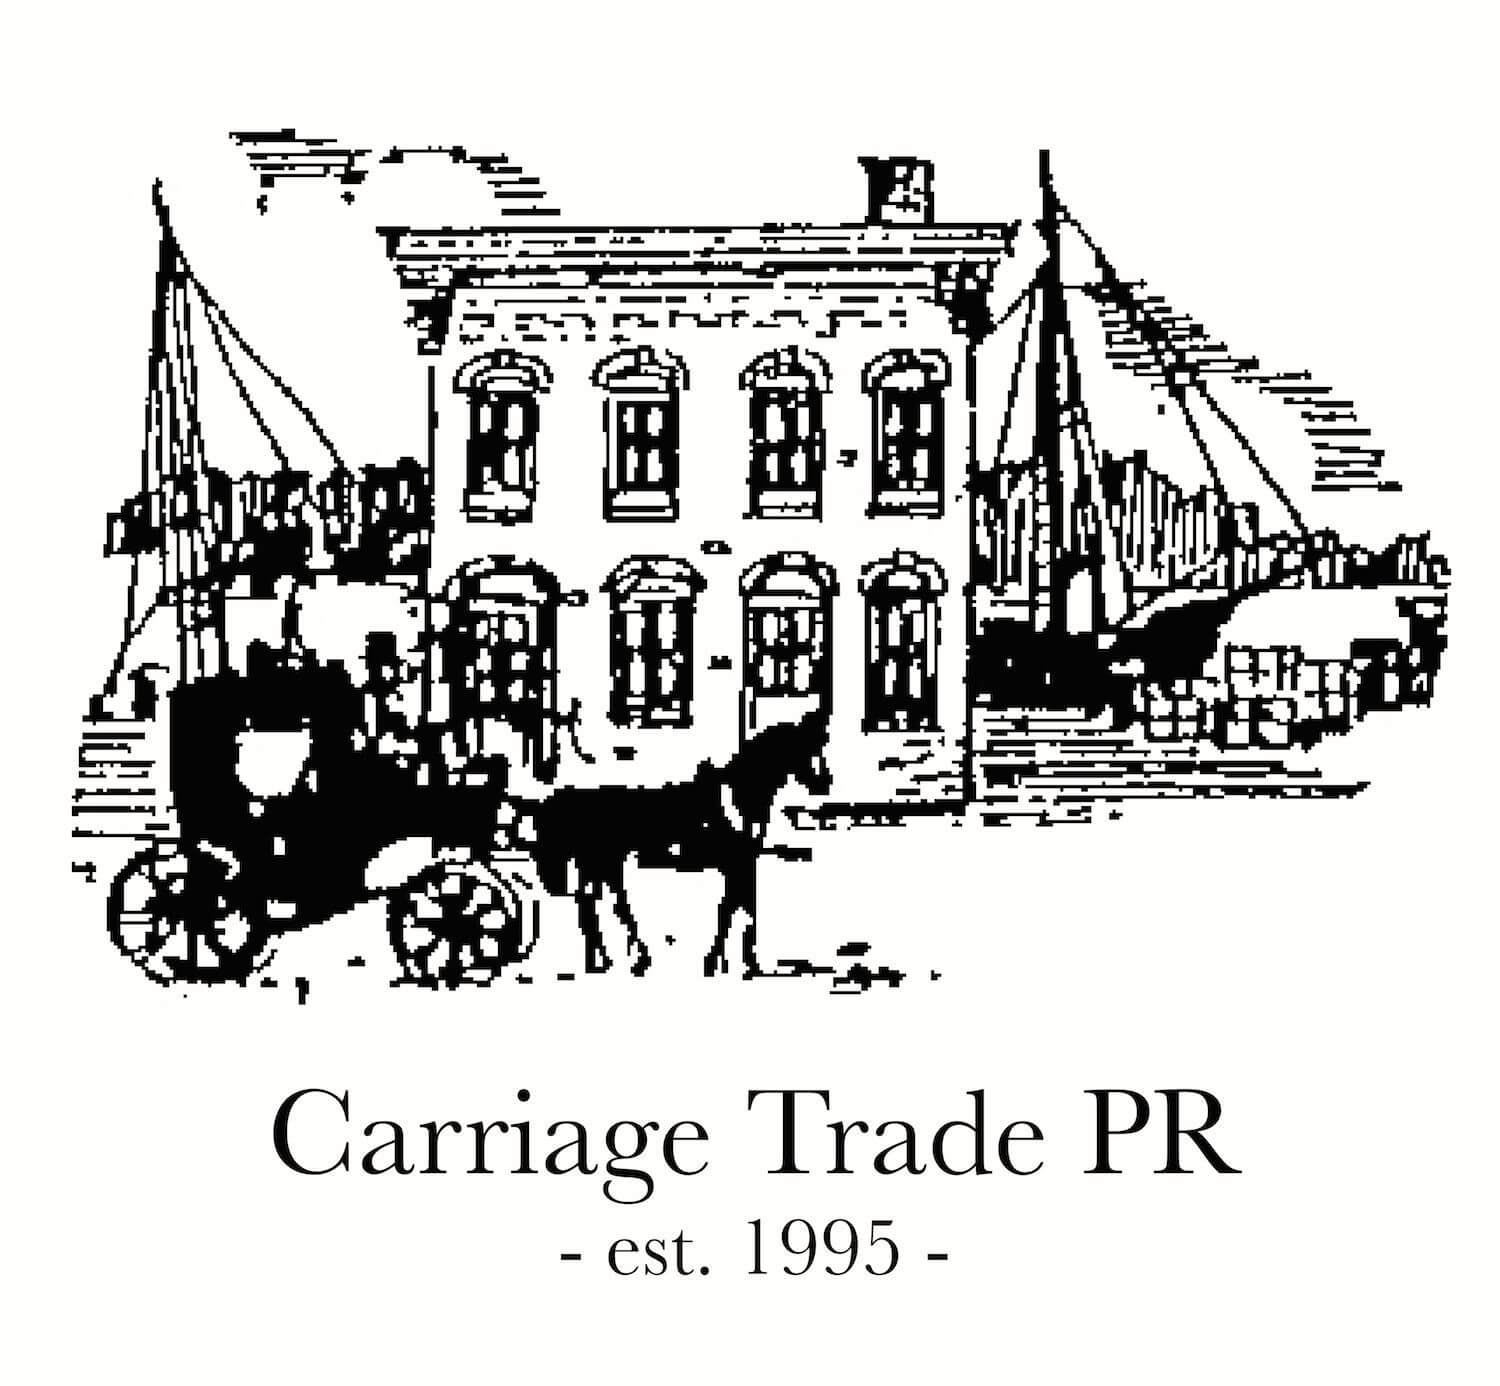 Carriage Trade PR